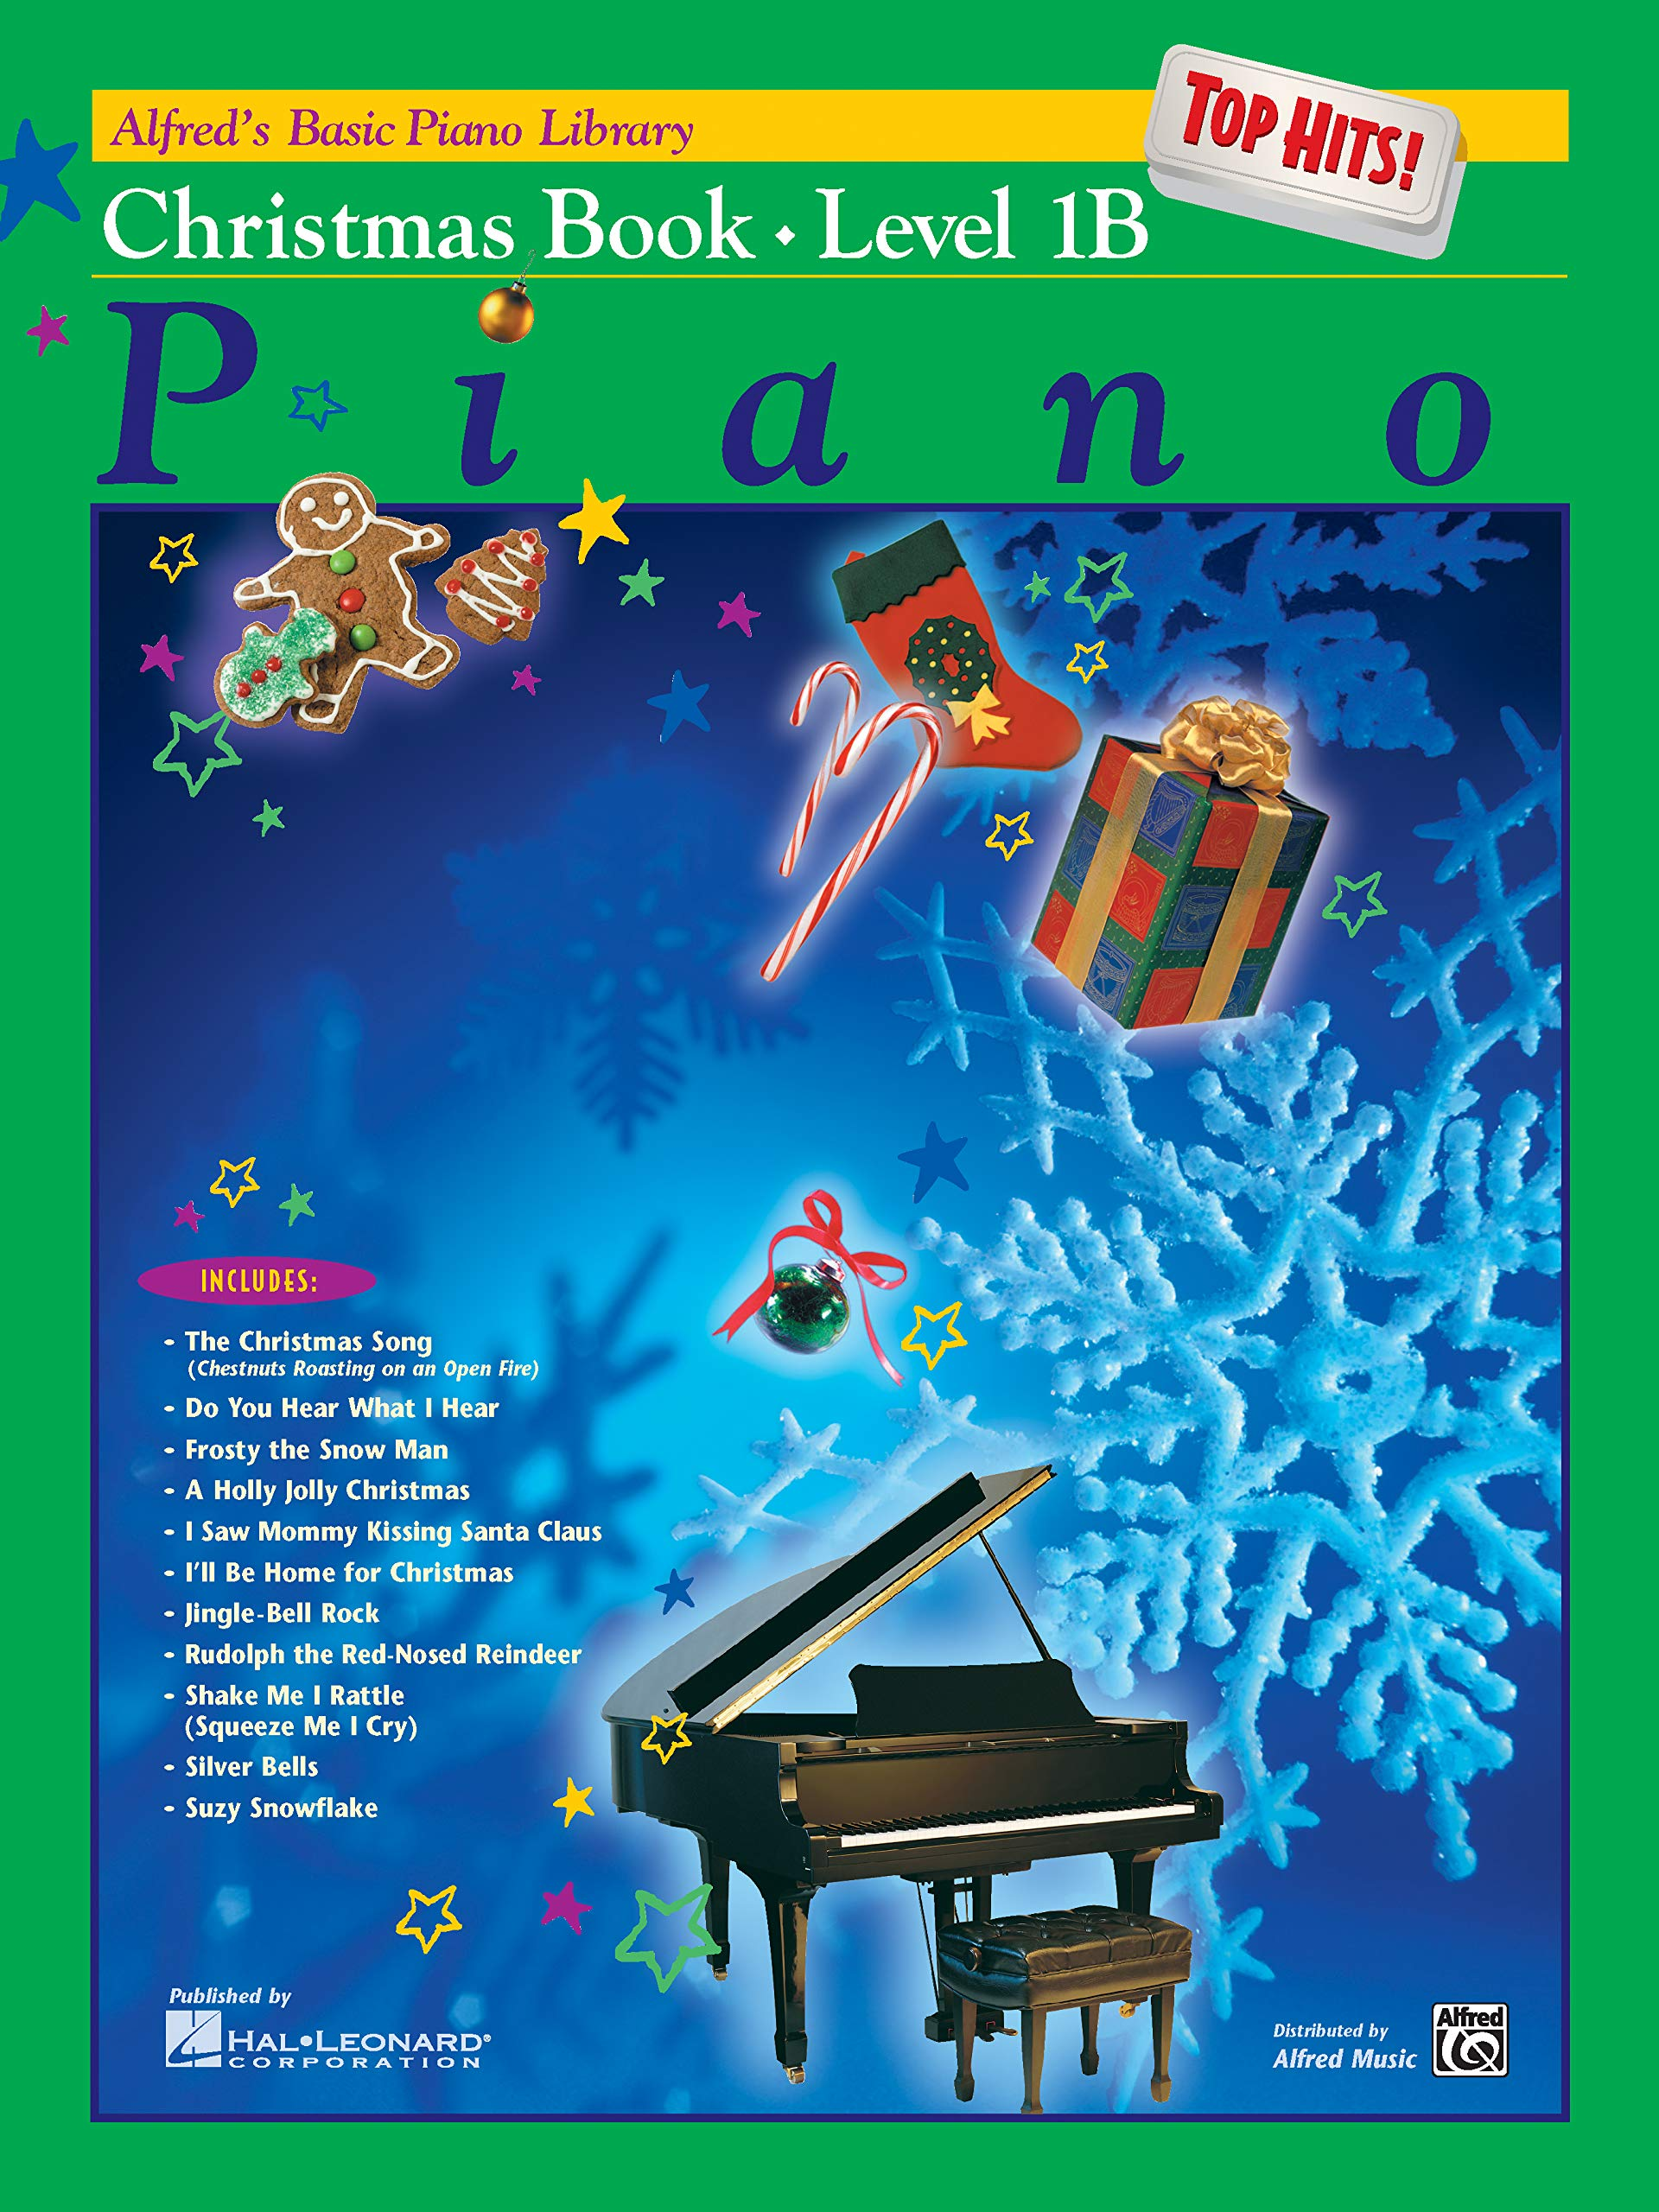 Alfreds Basic Piano Library Christmas